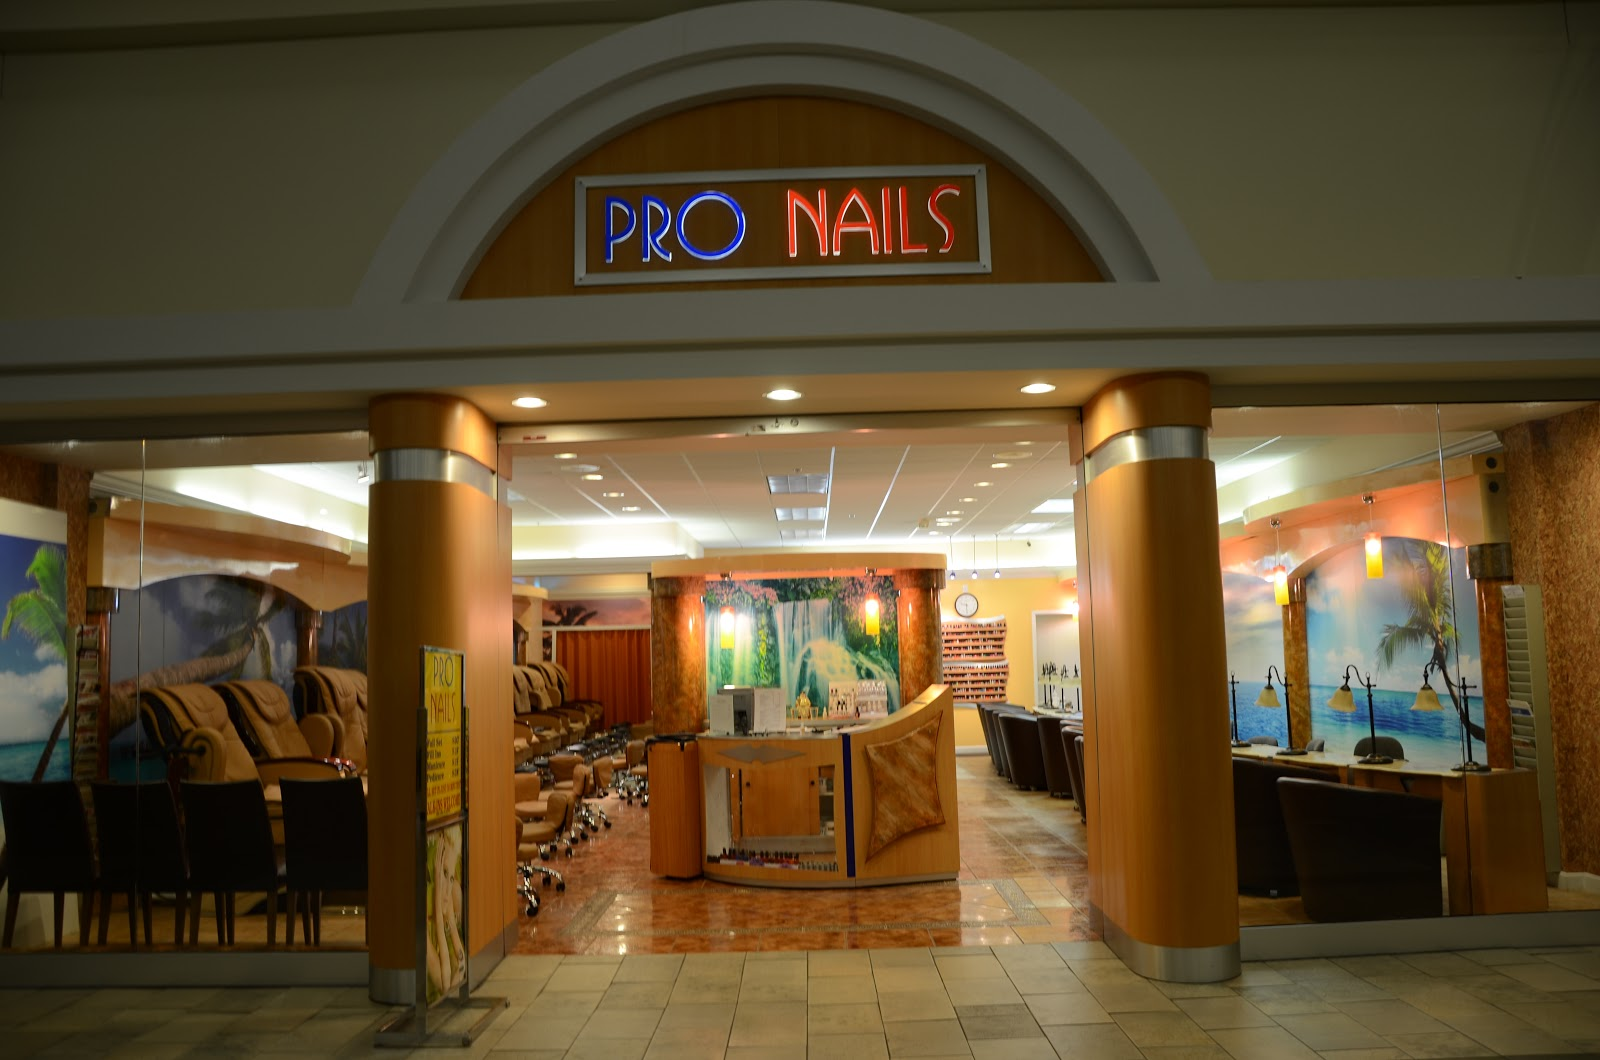 Pro nails nail salon oxmoor center shelbyville road for 24 hour nail salon brooklyn ny